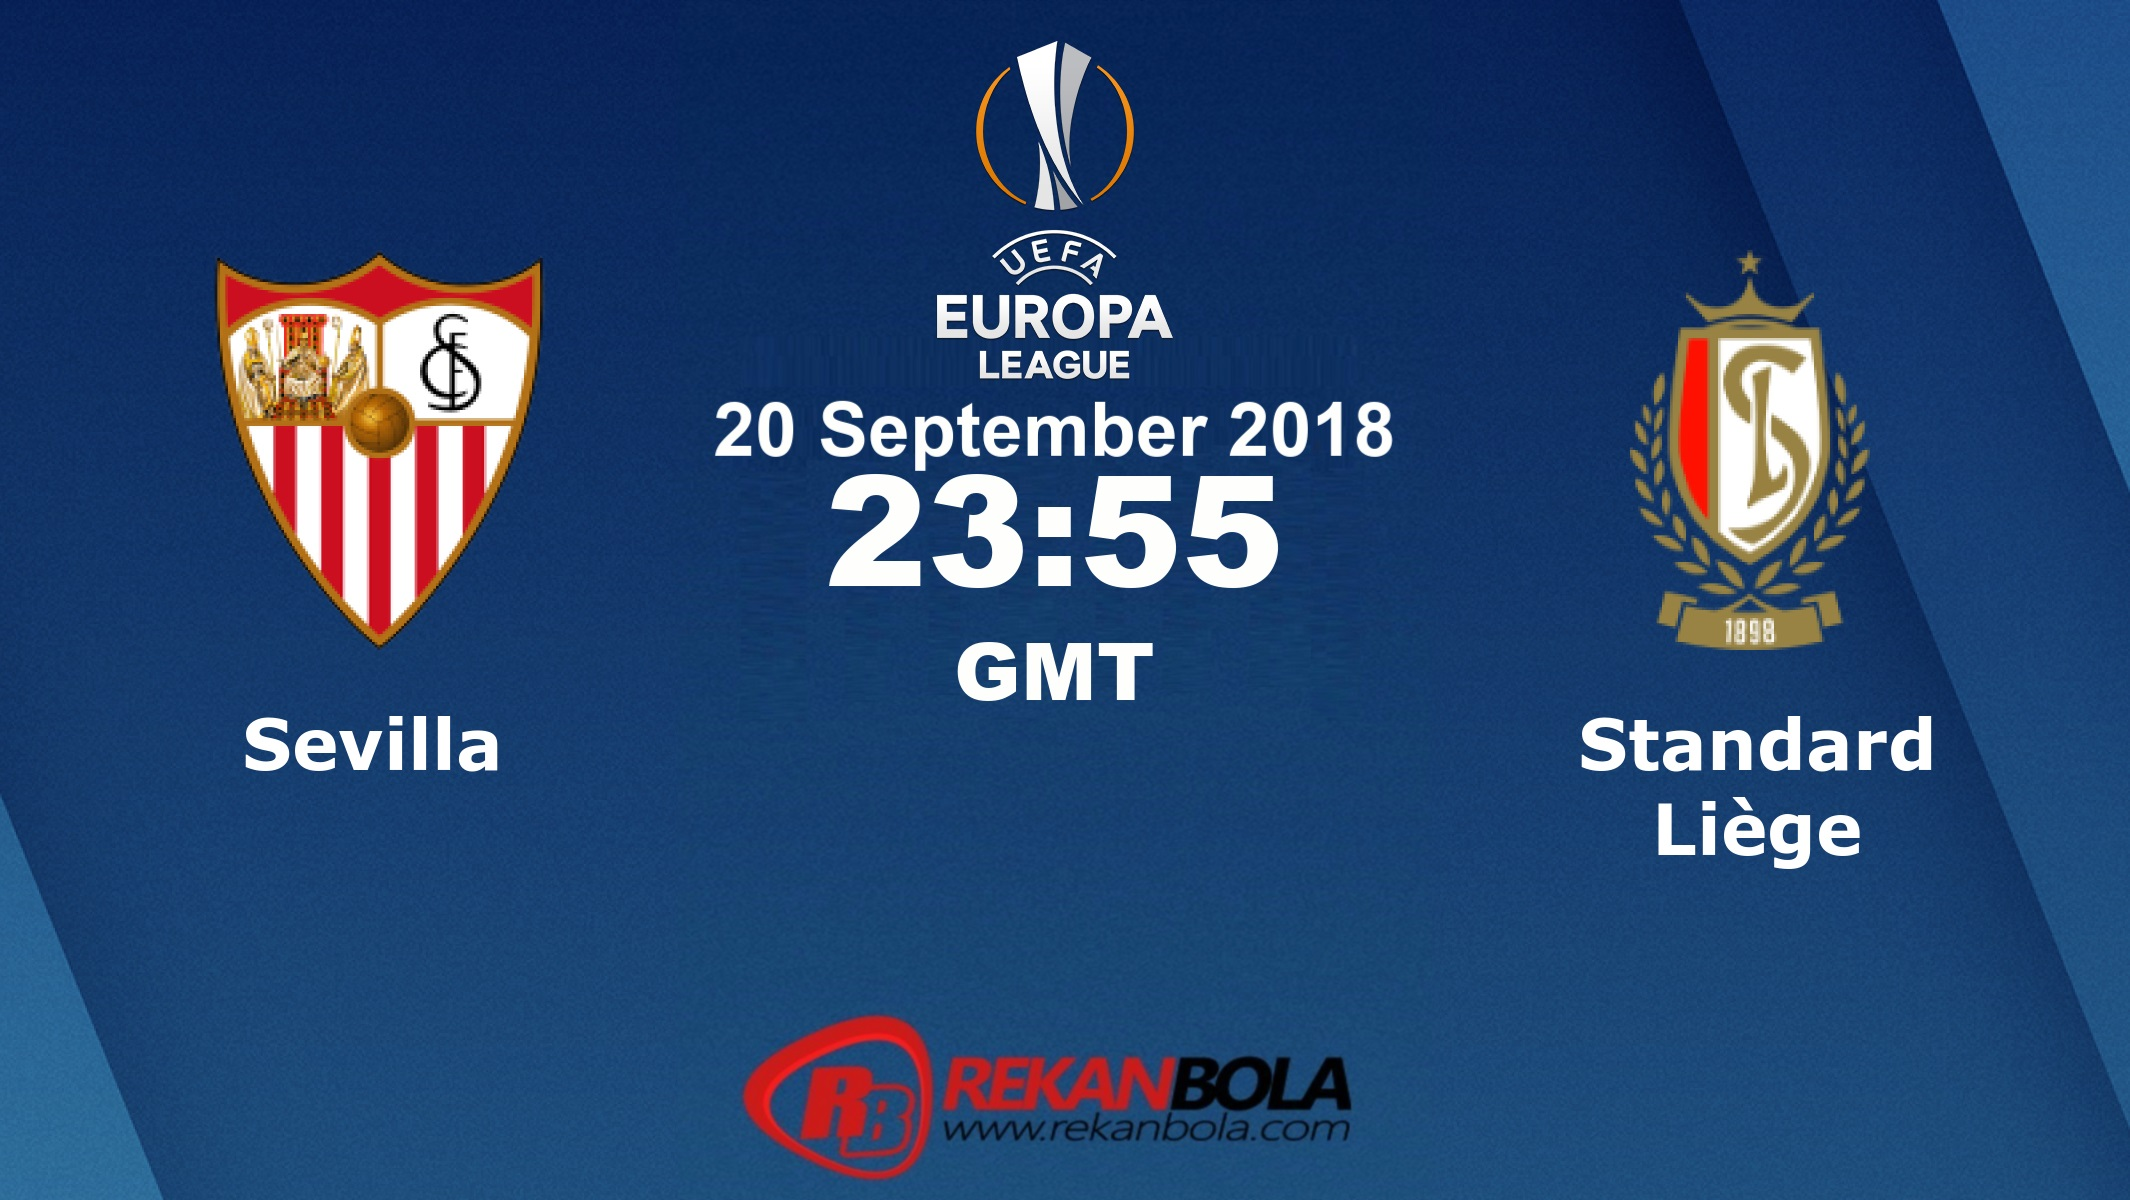 Nonton Siaran Live Streaming Sevilla Vs Liège 20 September 2018